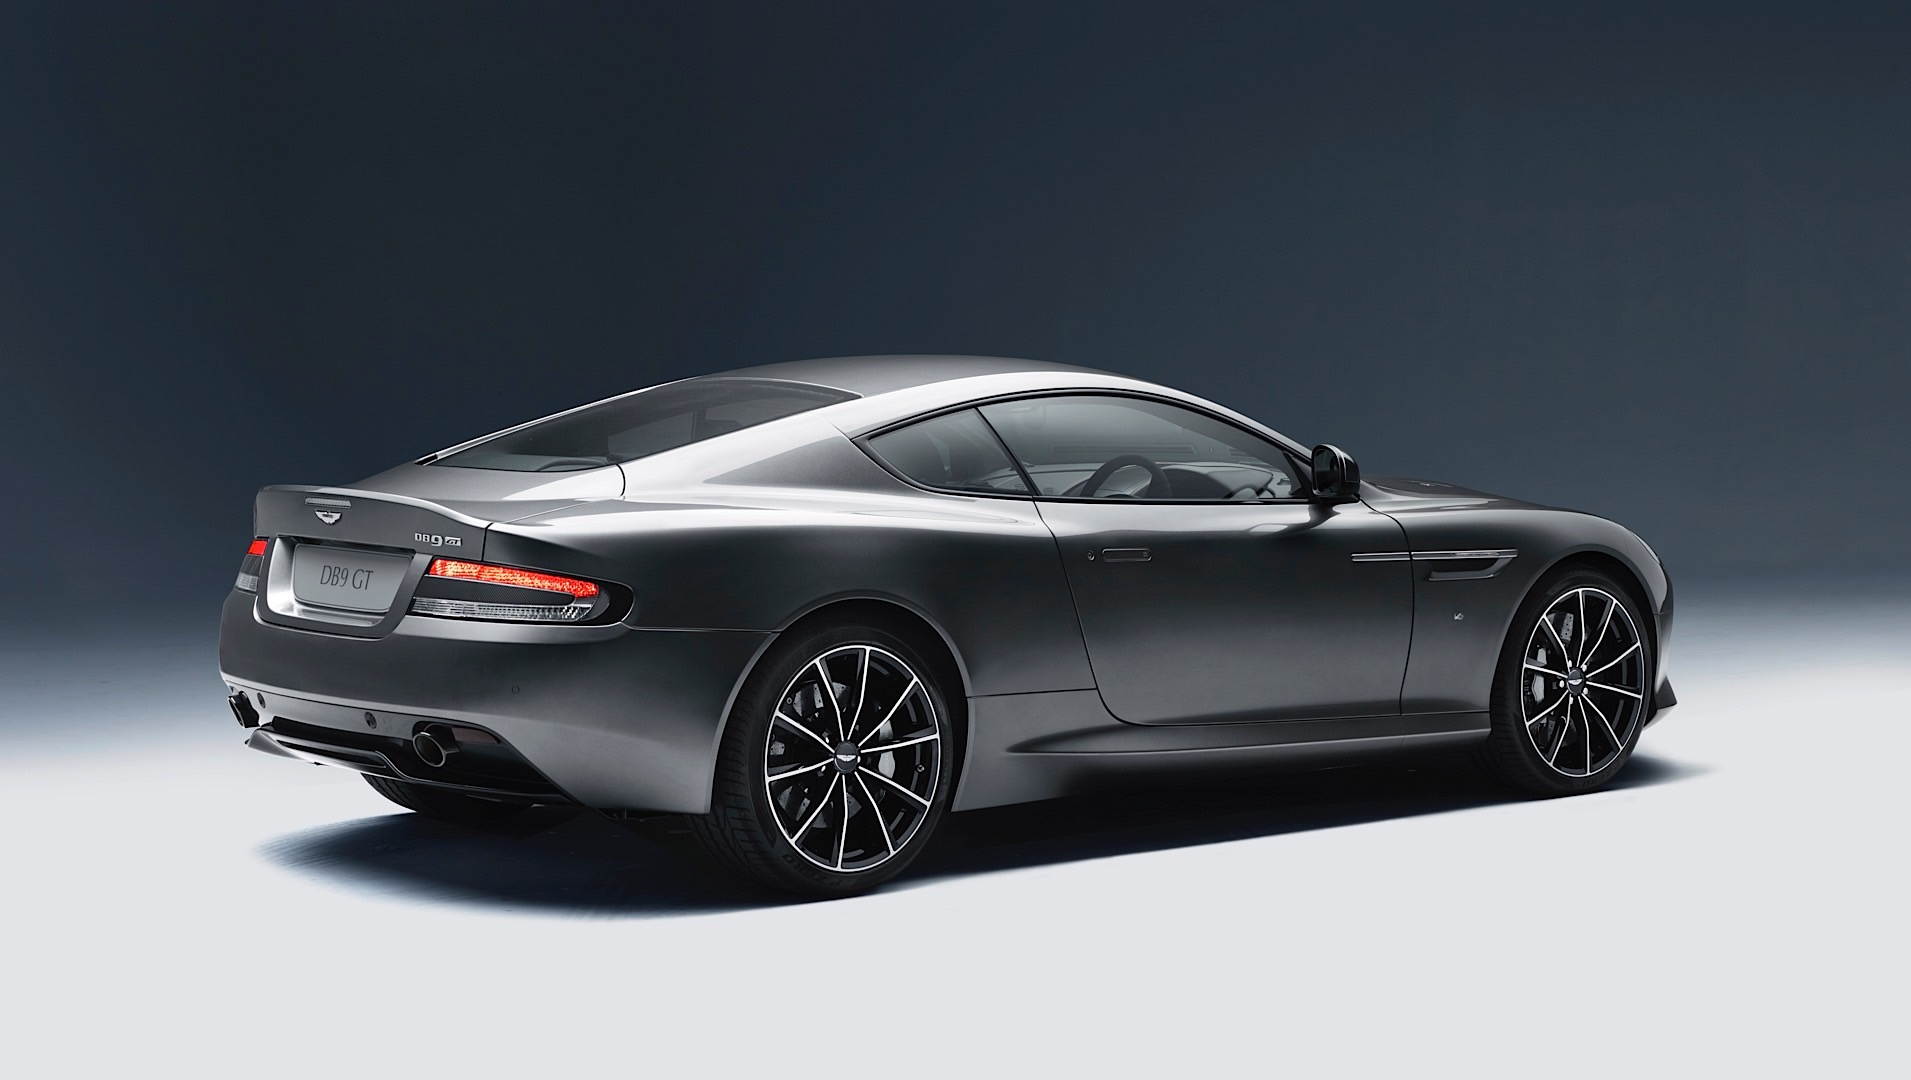 aston martin launches the db9 gt with upgraded 6.0-liter v12